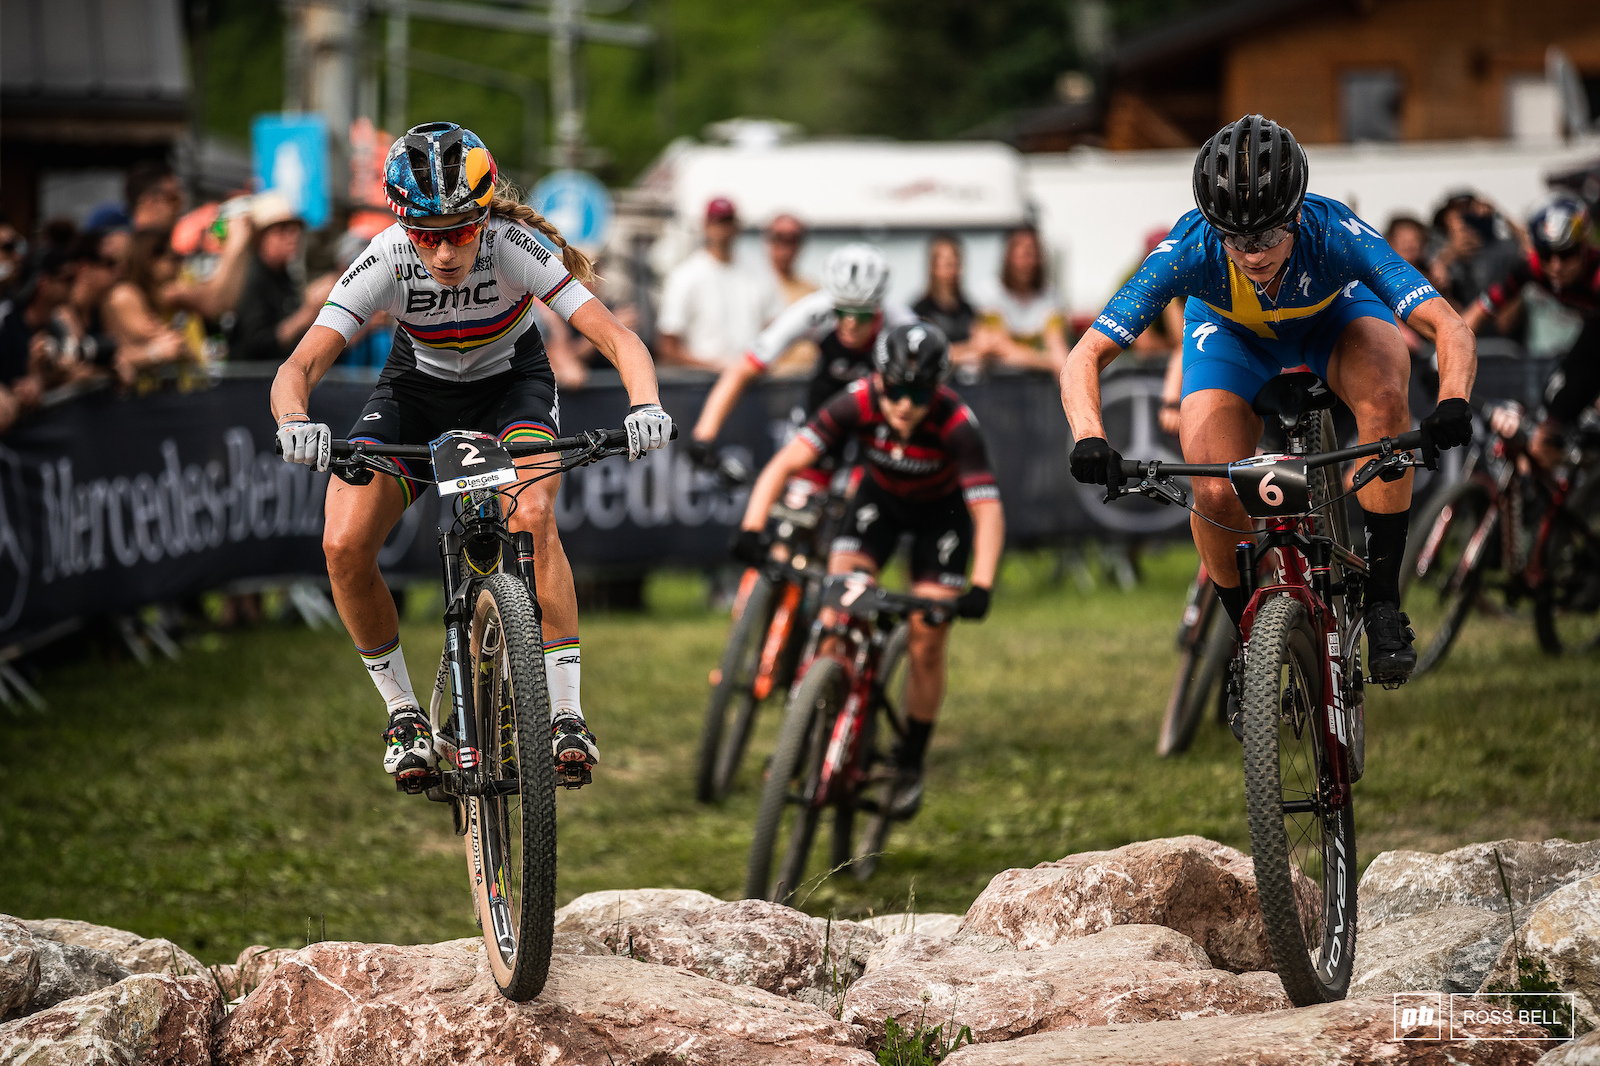 Pauline Ferrand Prevot and Jenny Rissveds justle for position mid-race.